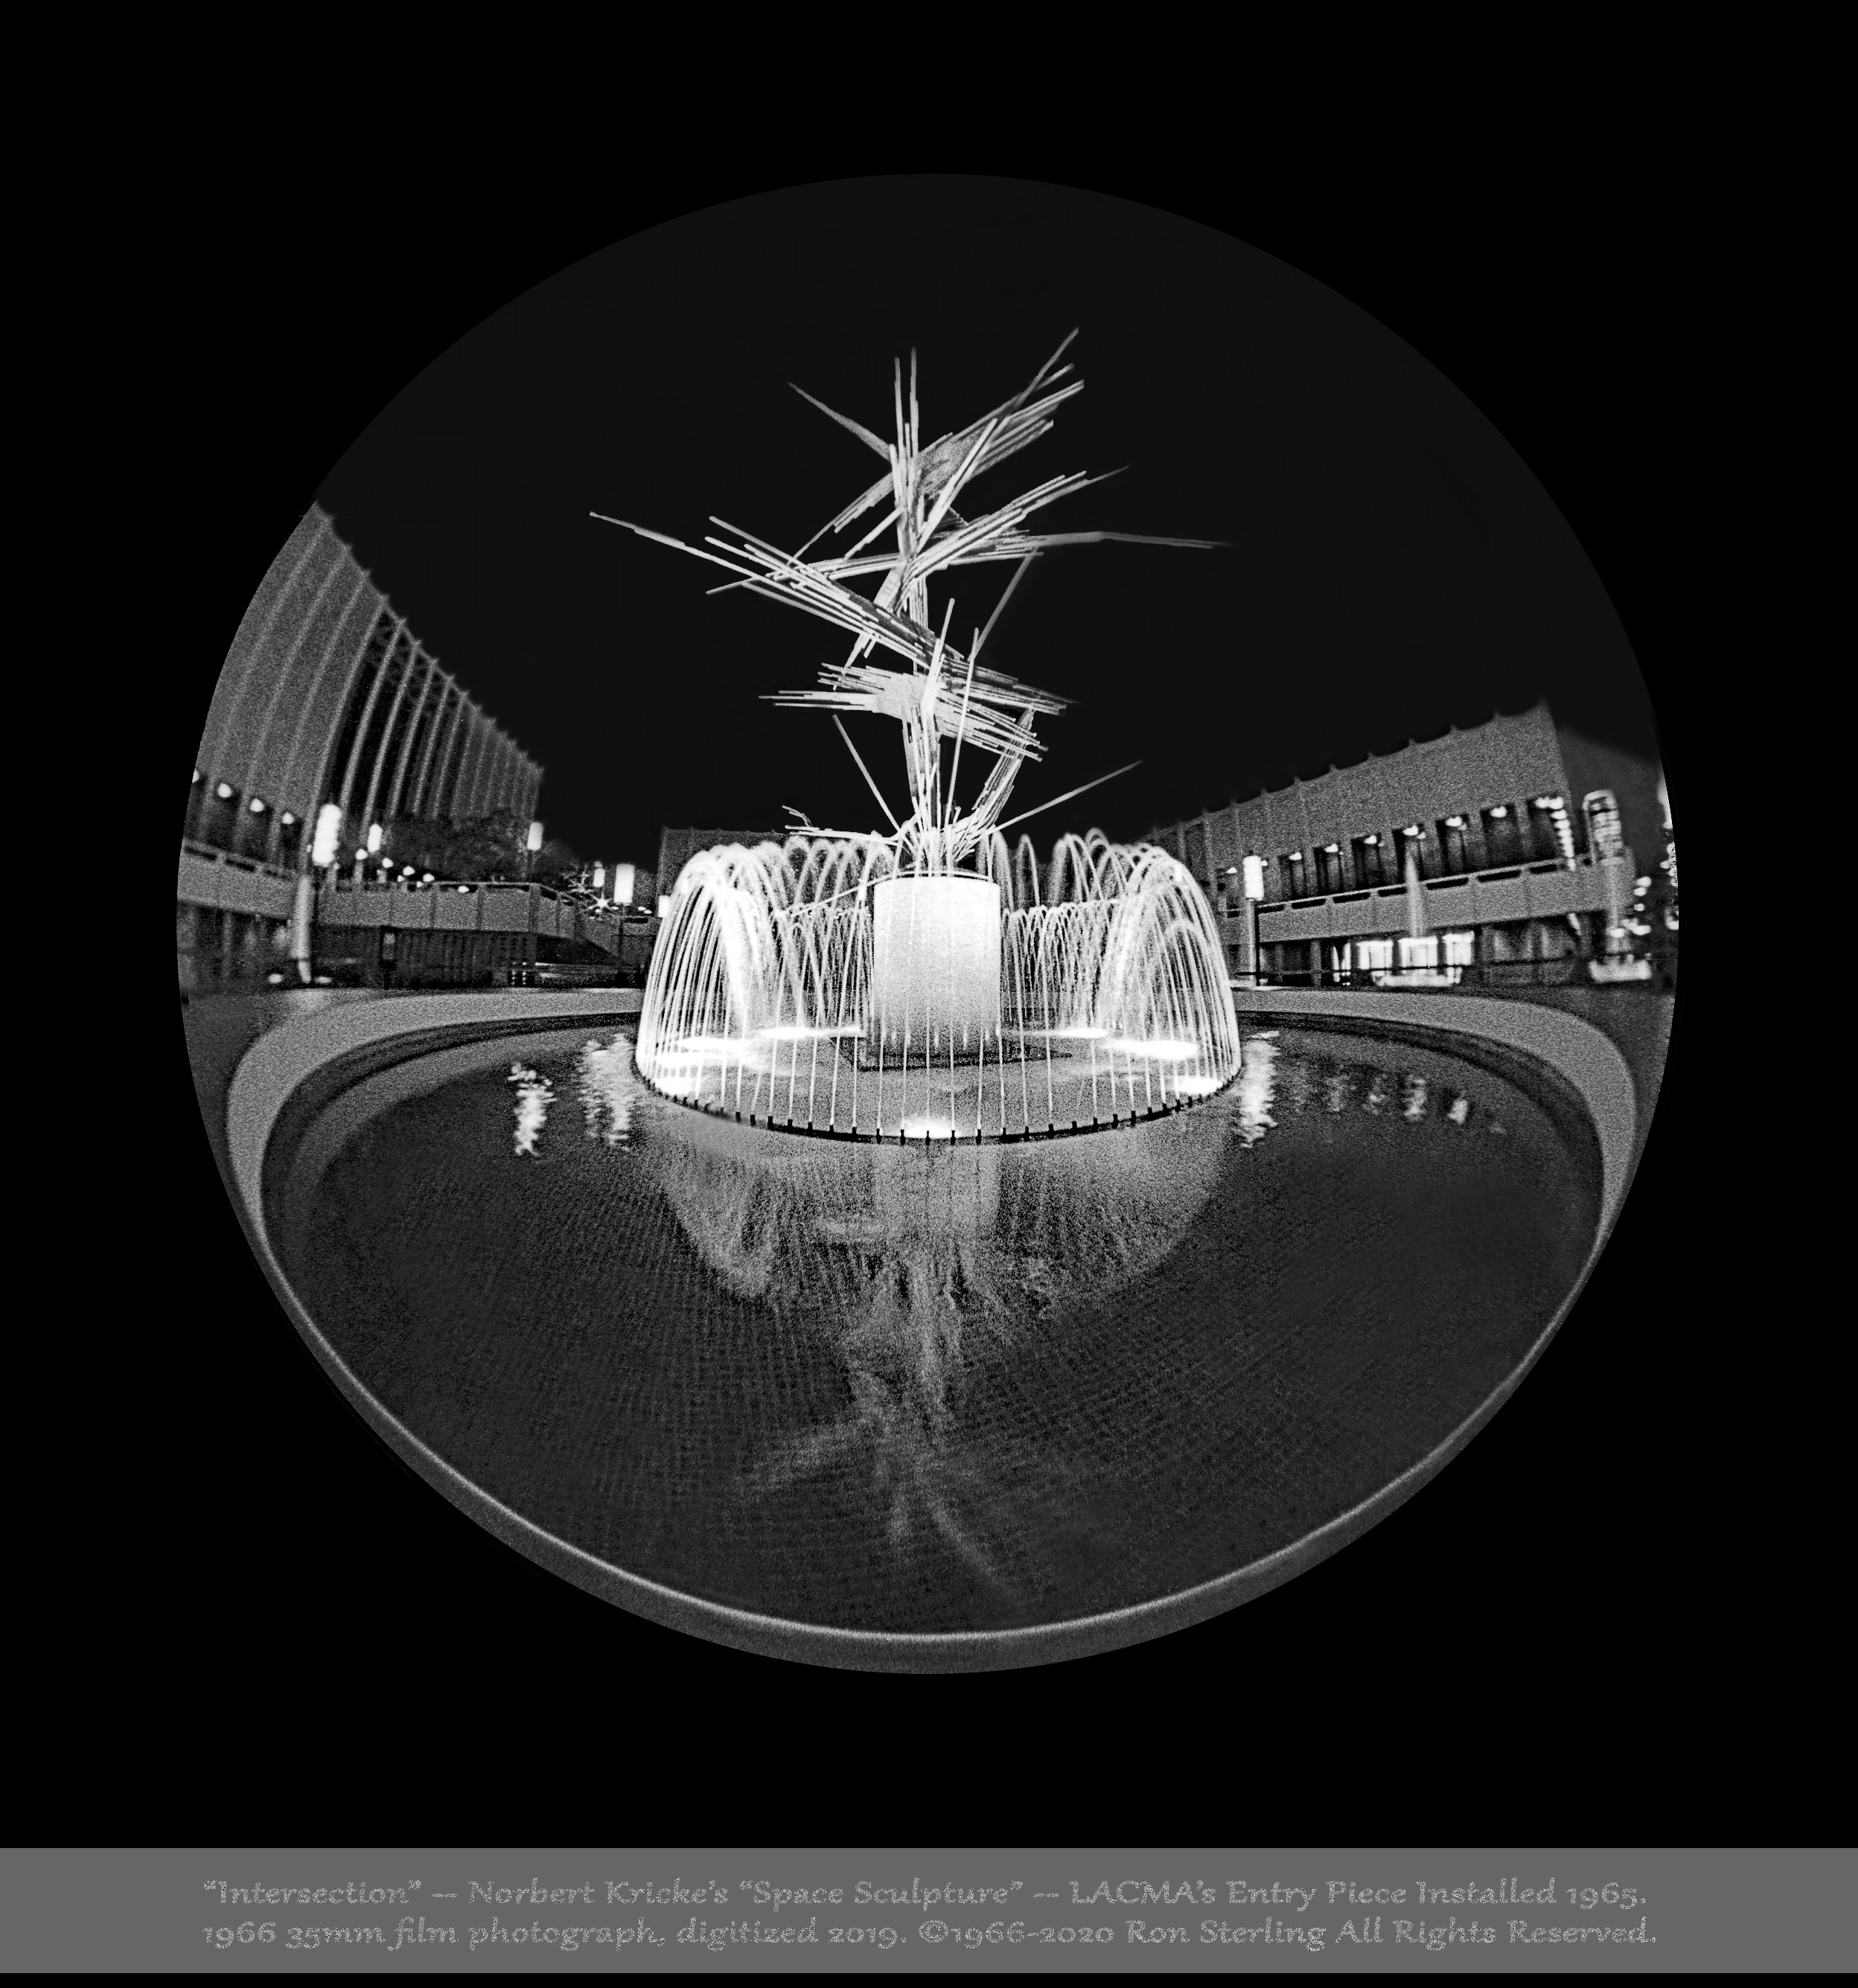 """""""Intersection.""""  Kricke Sculpture, The Original Main Entry Piece When LACMA Opened in 1965"""